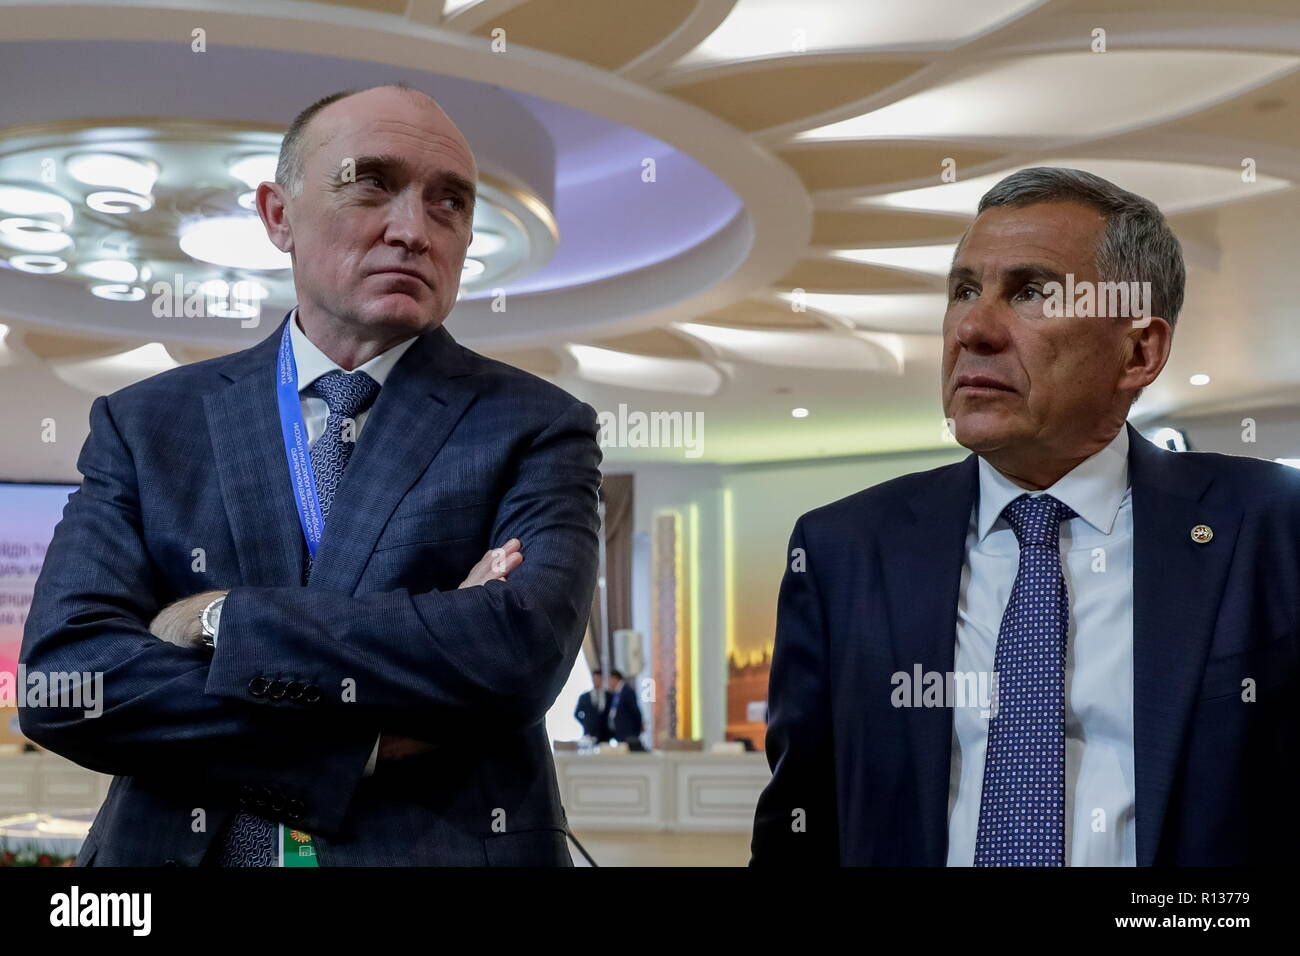 Petropavlovsk, Kazakhstan. 09th Nov, 2018. PETROPAVLOVSK, KAZAKHSTAN - NOVEMBER 9, 2018: The Governor of Russia's Chelyabinsk Region Boris Dubrovsky (L) and the President of Russia's Republic of Tatarstan Rustam Minnikhanov before a plenary meeting at the 15th Russia-Kazakhstan Interregional Cooperation Forum, in Petropavlovsk (Petropavl), North Kazakhstan Region. Mikhail Metzel/TASS Credit: ITAR-TASS News Agency/Alamy Live News - Stock Image